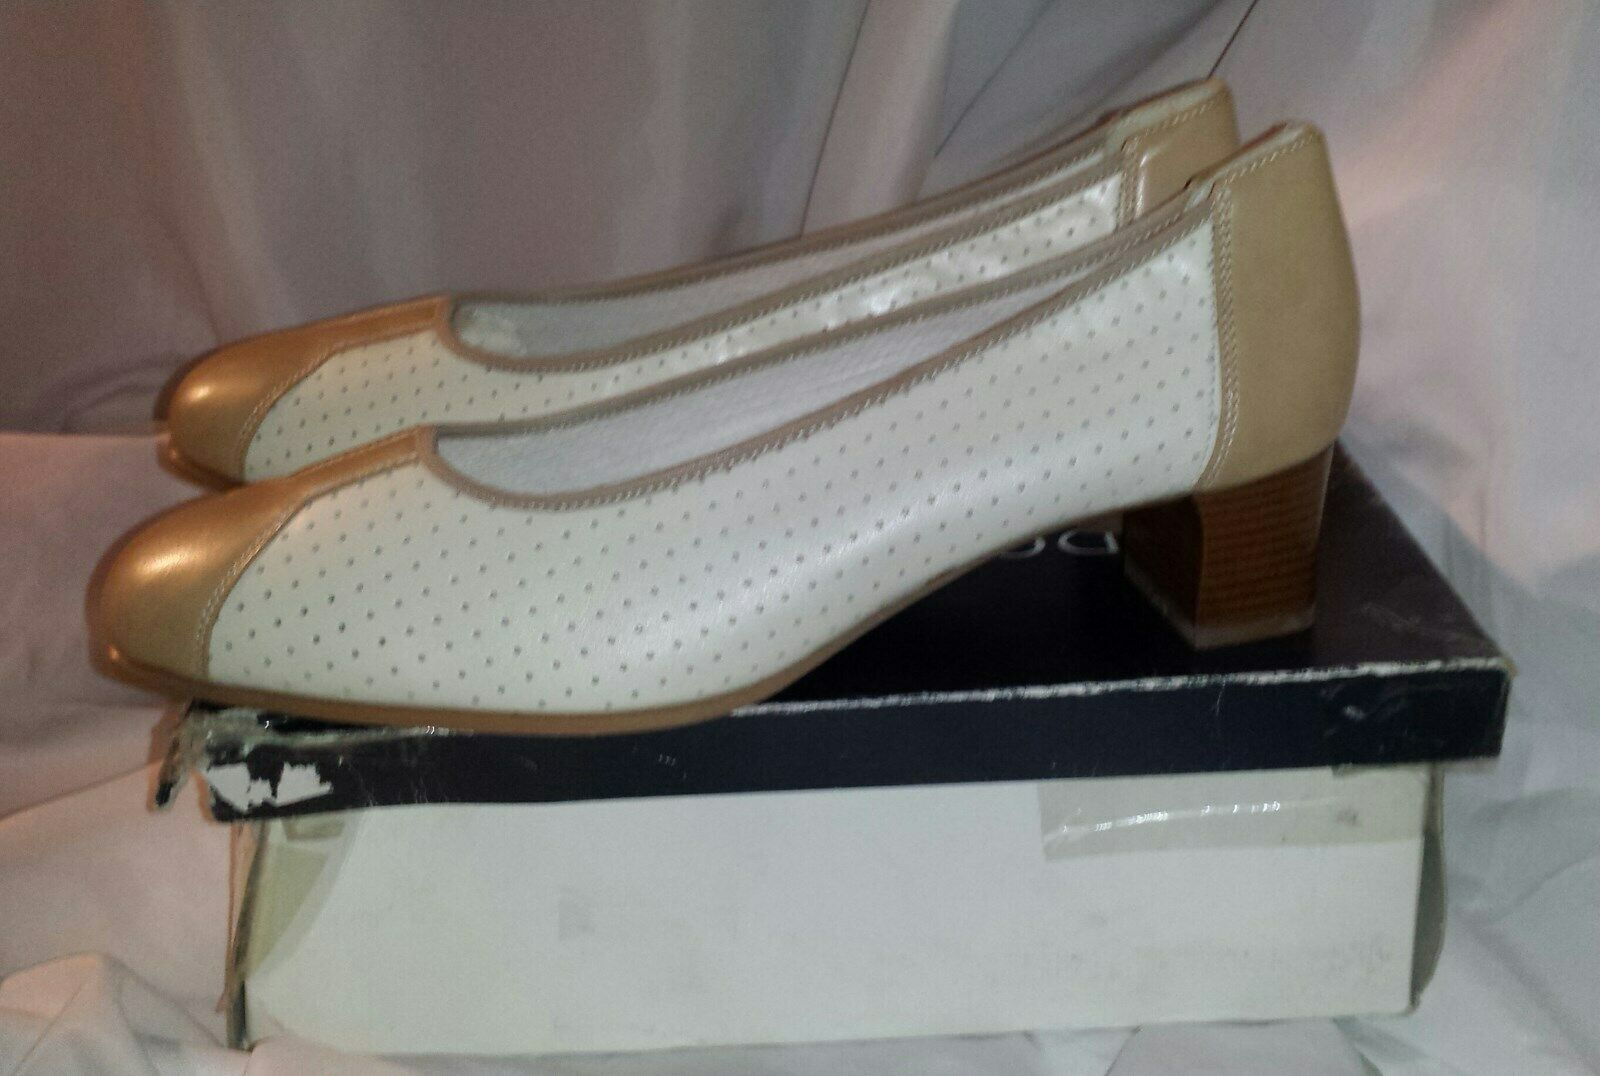 3086a33120cea & Beige Heeled shoes UK8H - Dorndorf (Wide Fit) BNIB Cream Leather ...